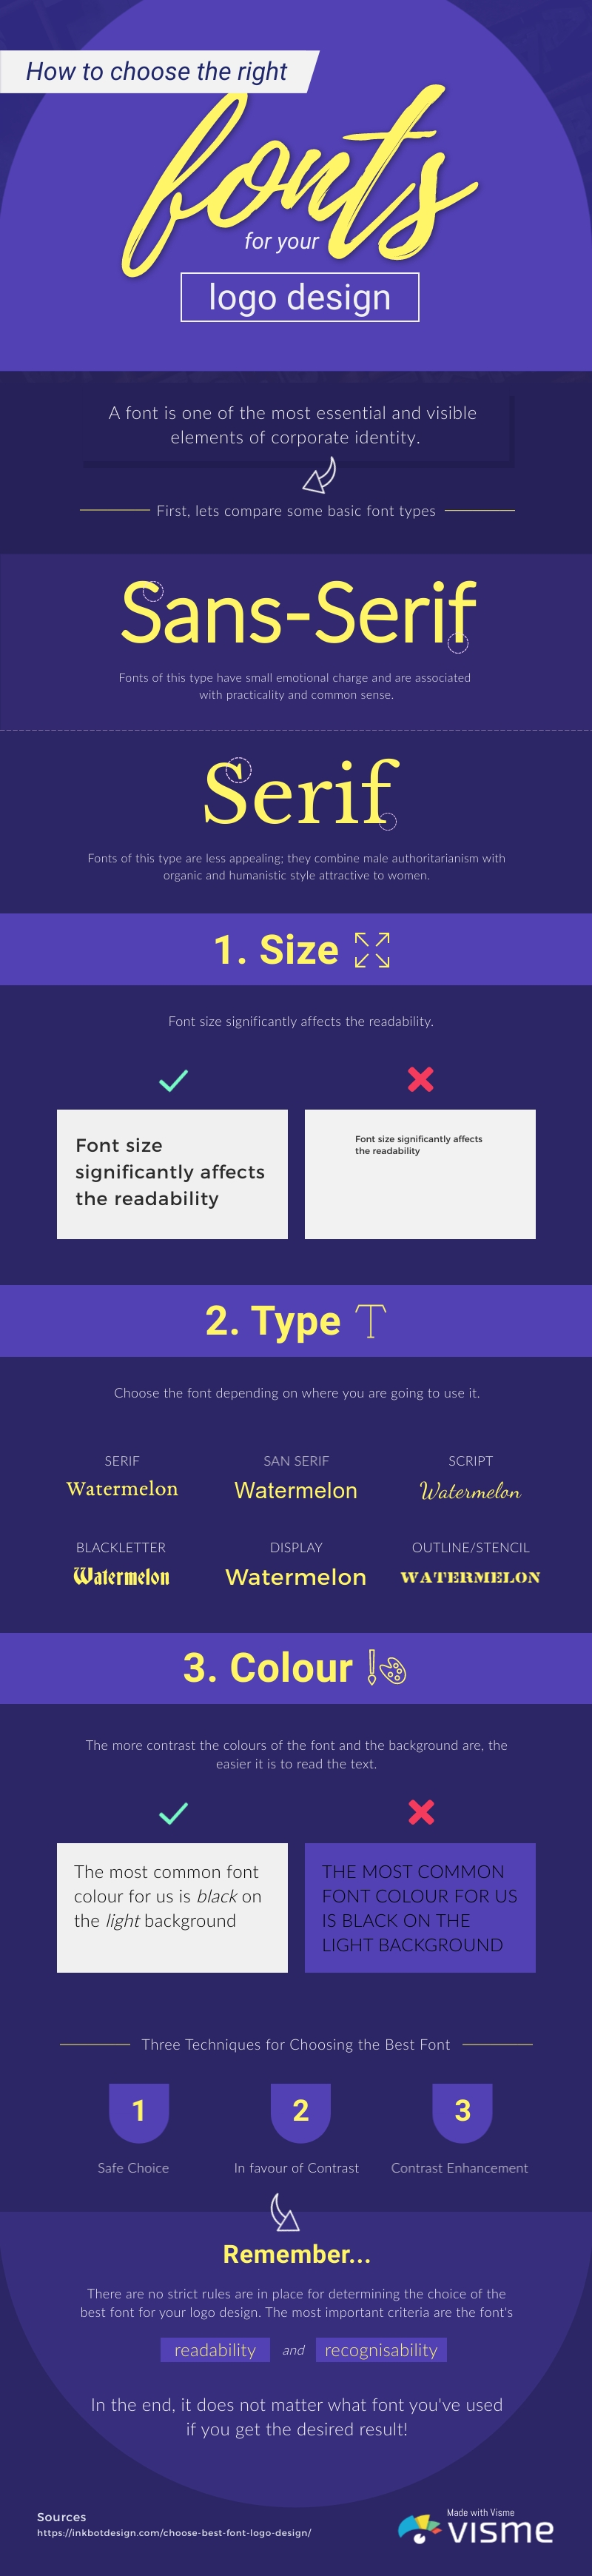 How to Choose the Best Font - Infographic Template